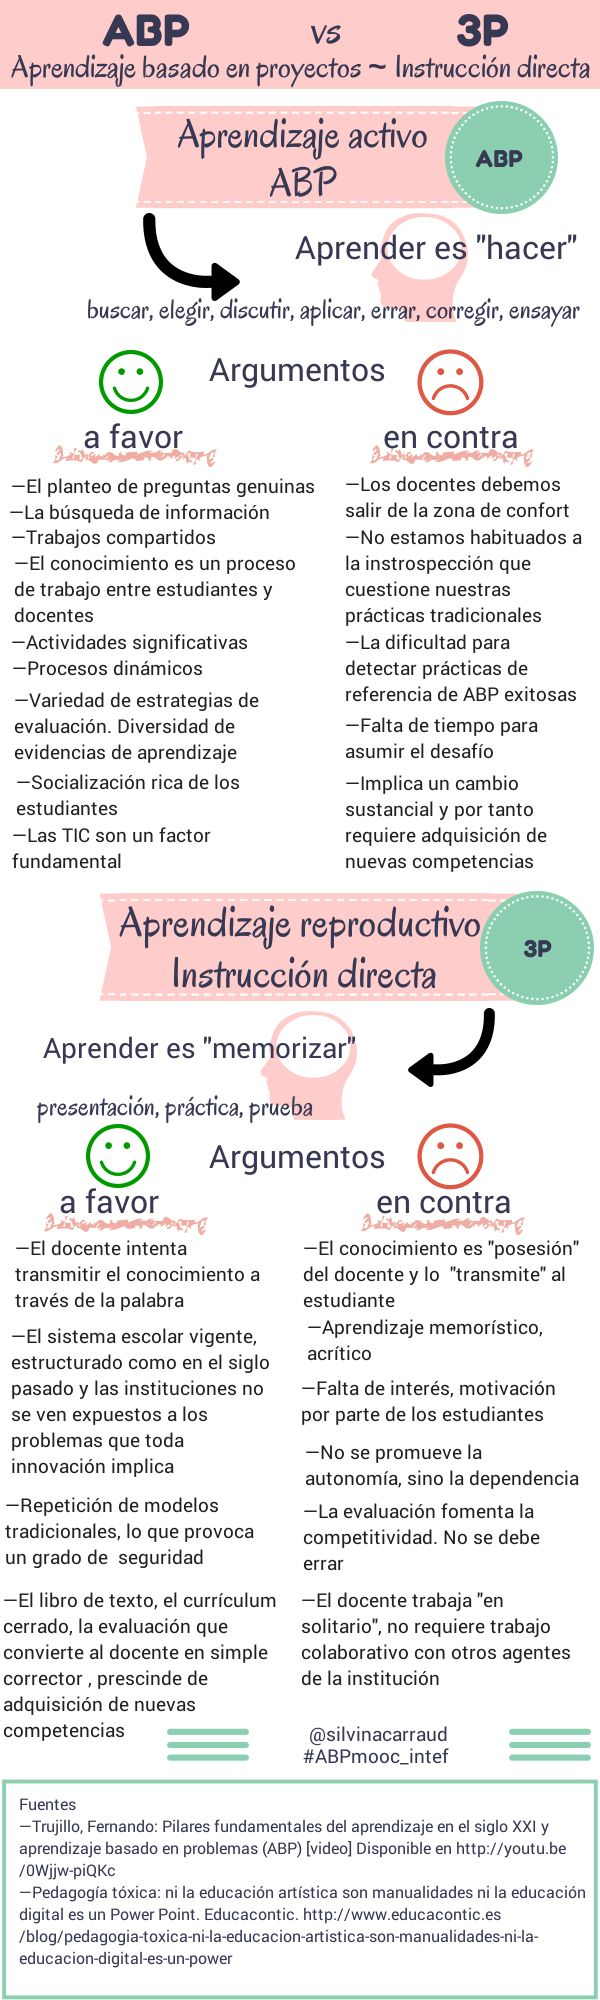 557 best Educación images on Pinterest | Knowledge, Spanish ...